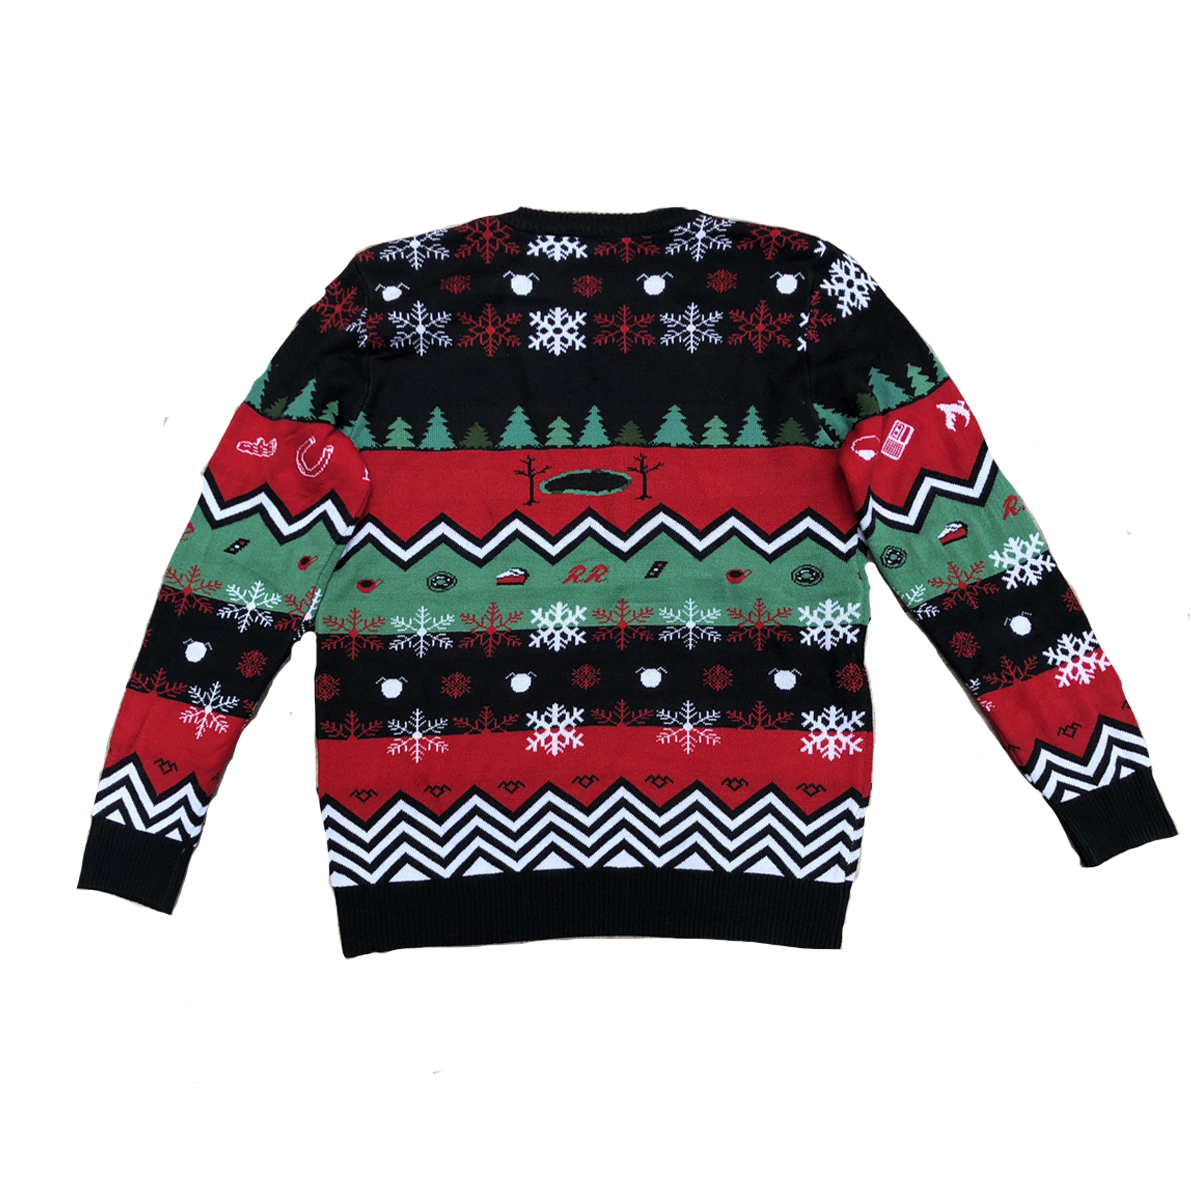 Twin Peaks Fire Walk With Me Holiday Sweater Shop The Showtime